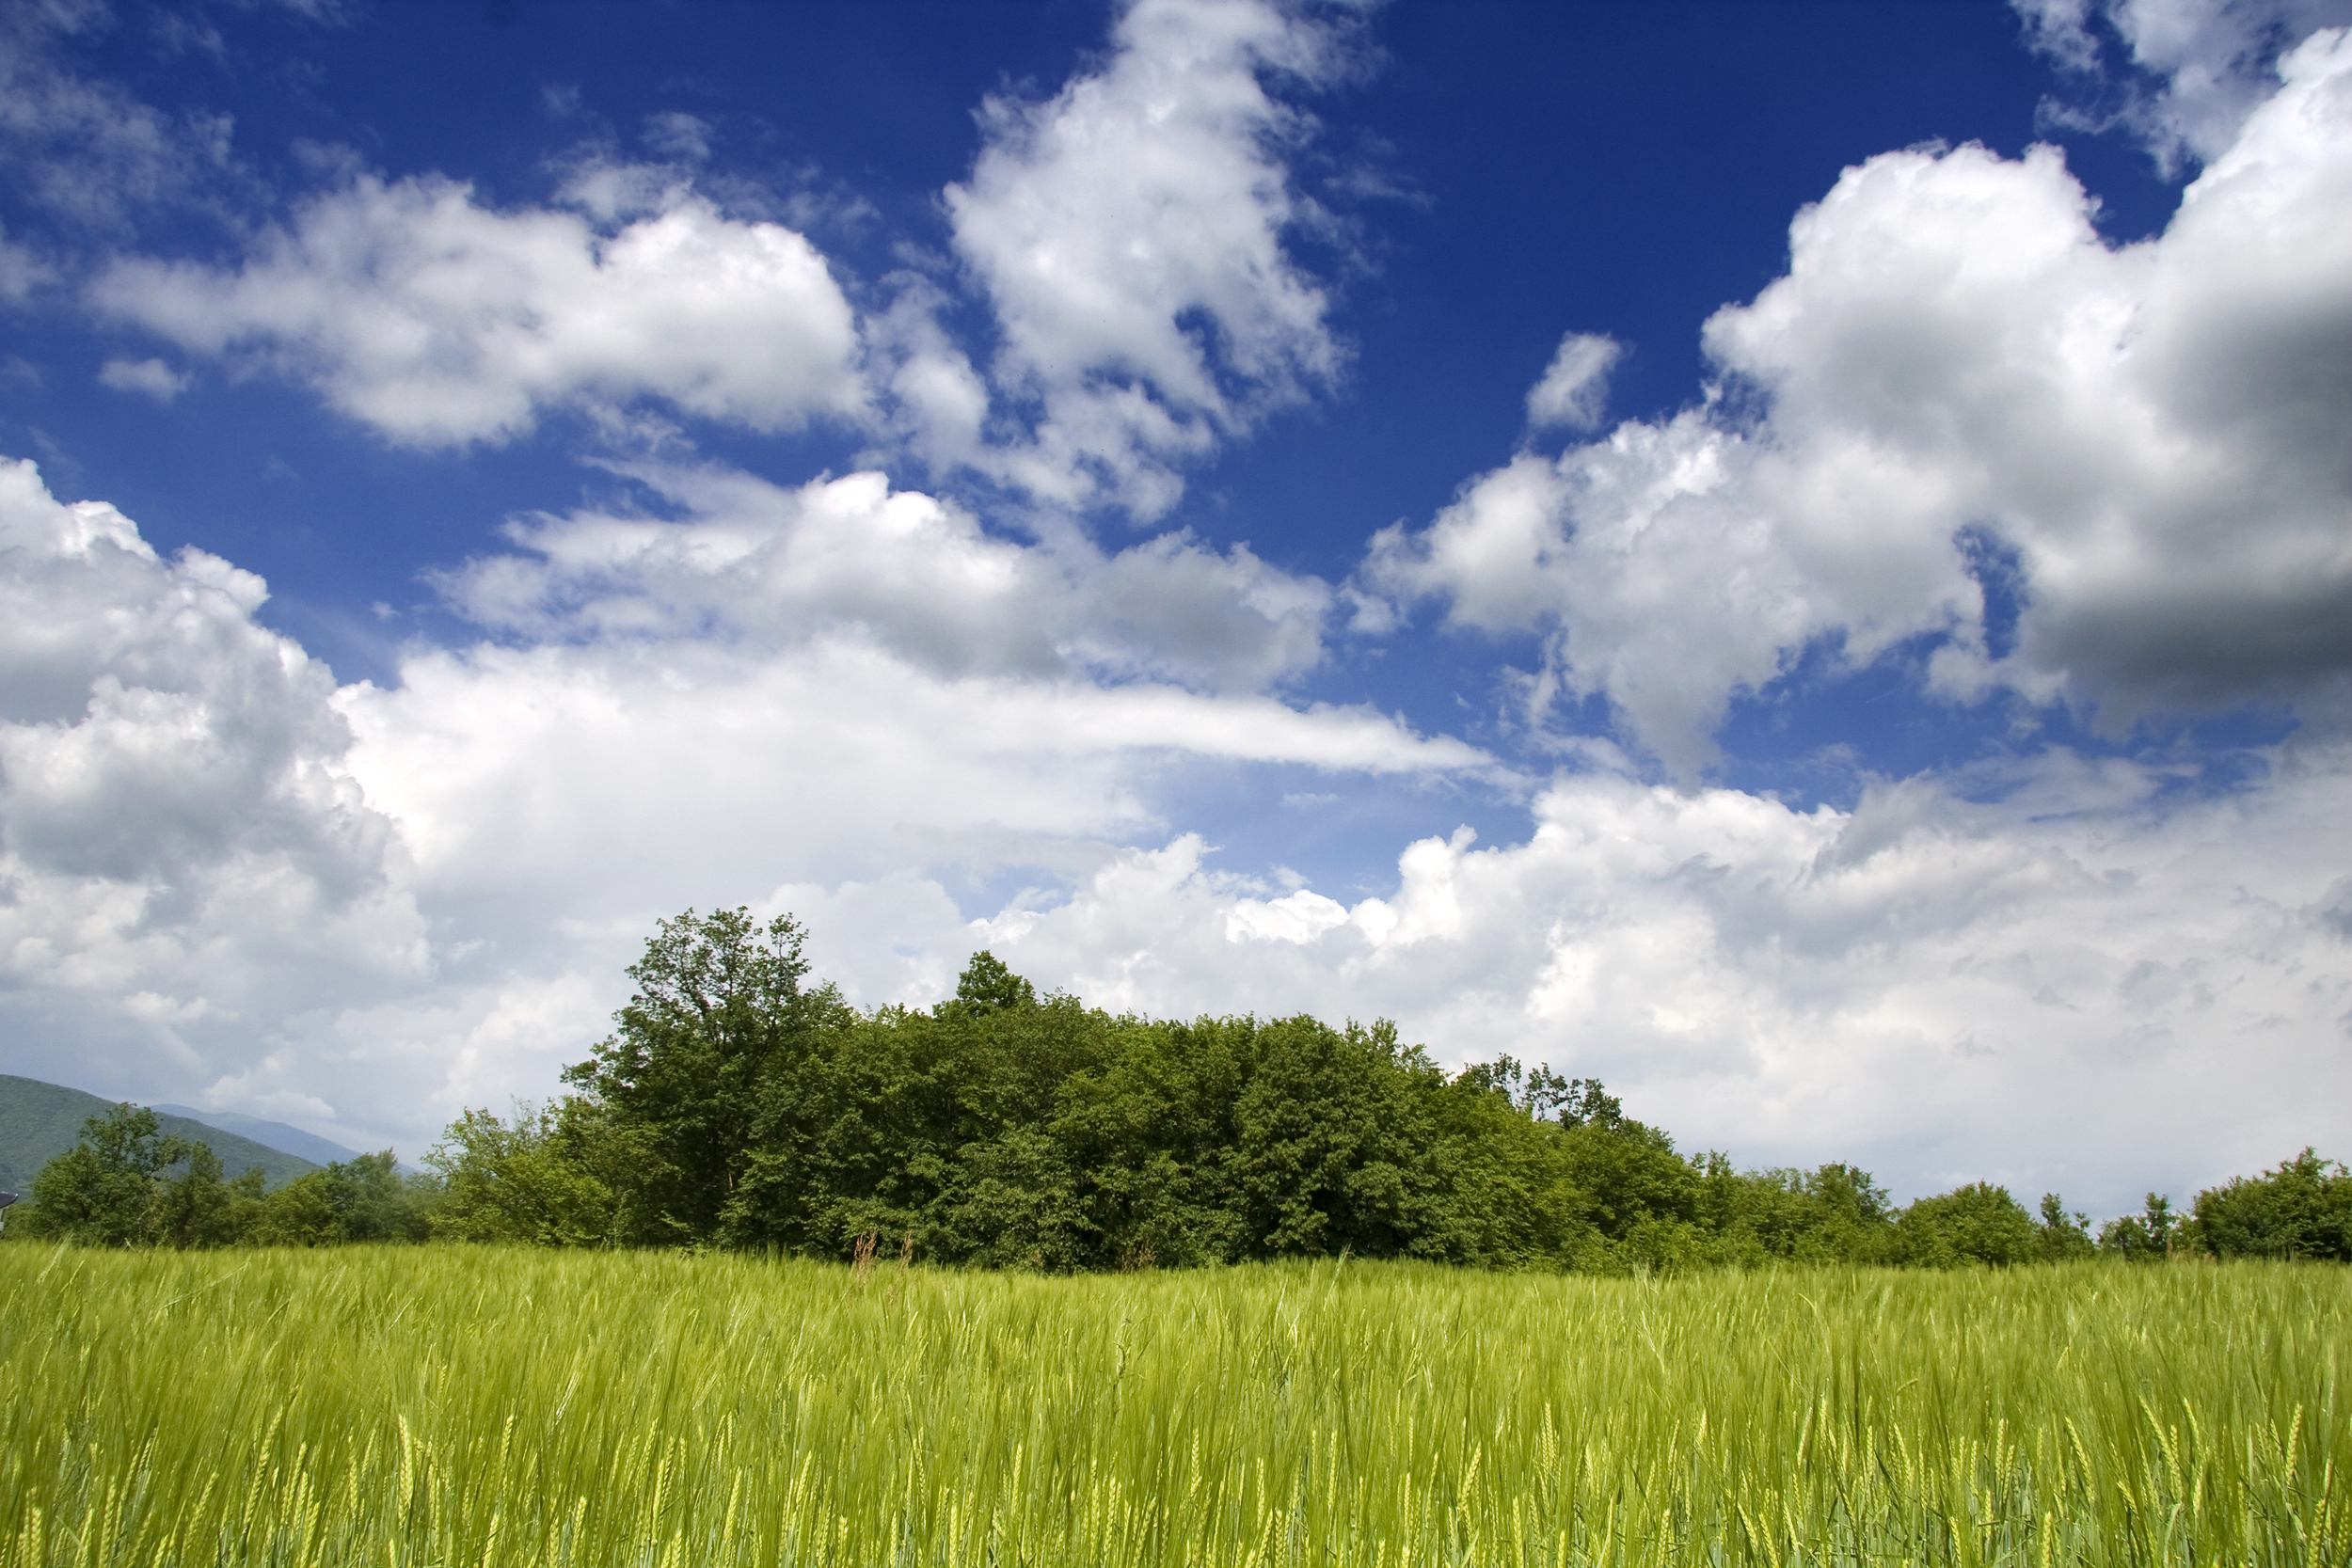 Sky, Blue, Clouds, Field, Green, HQ Photo